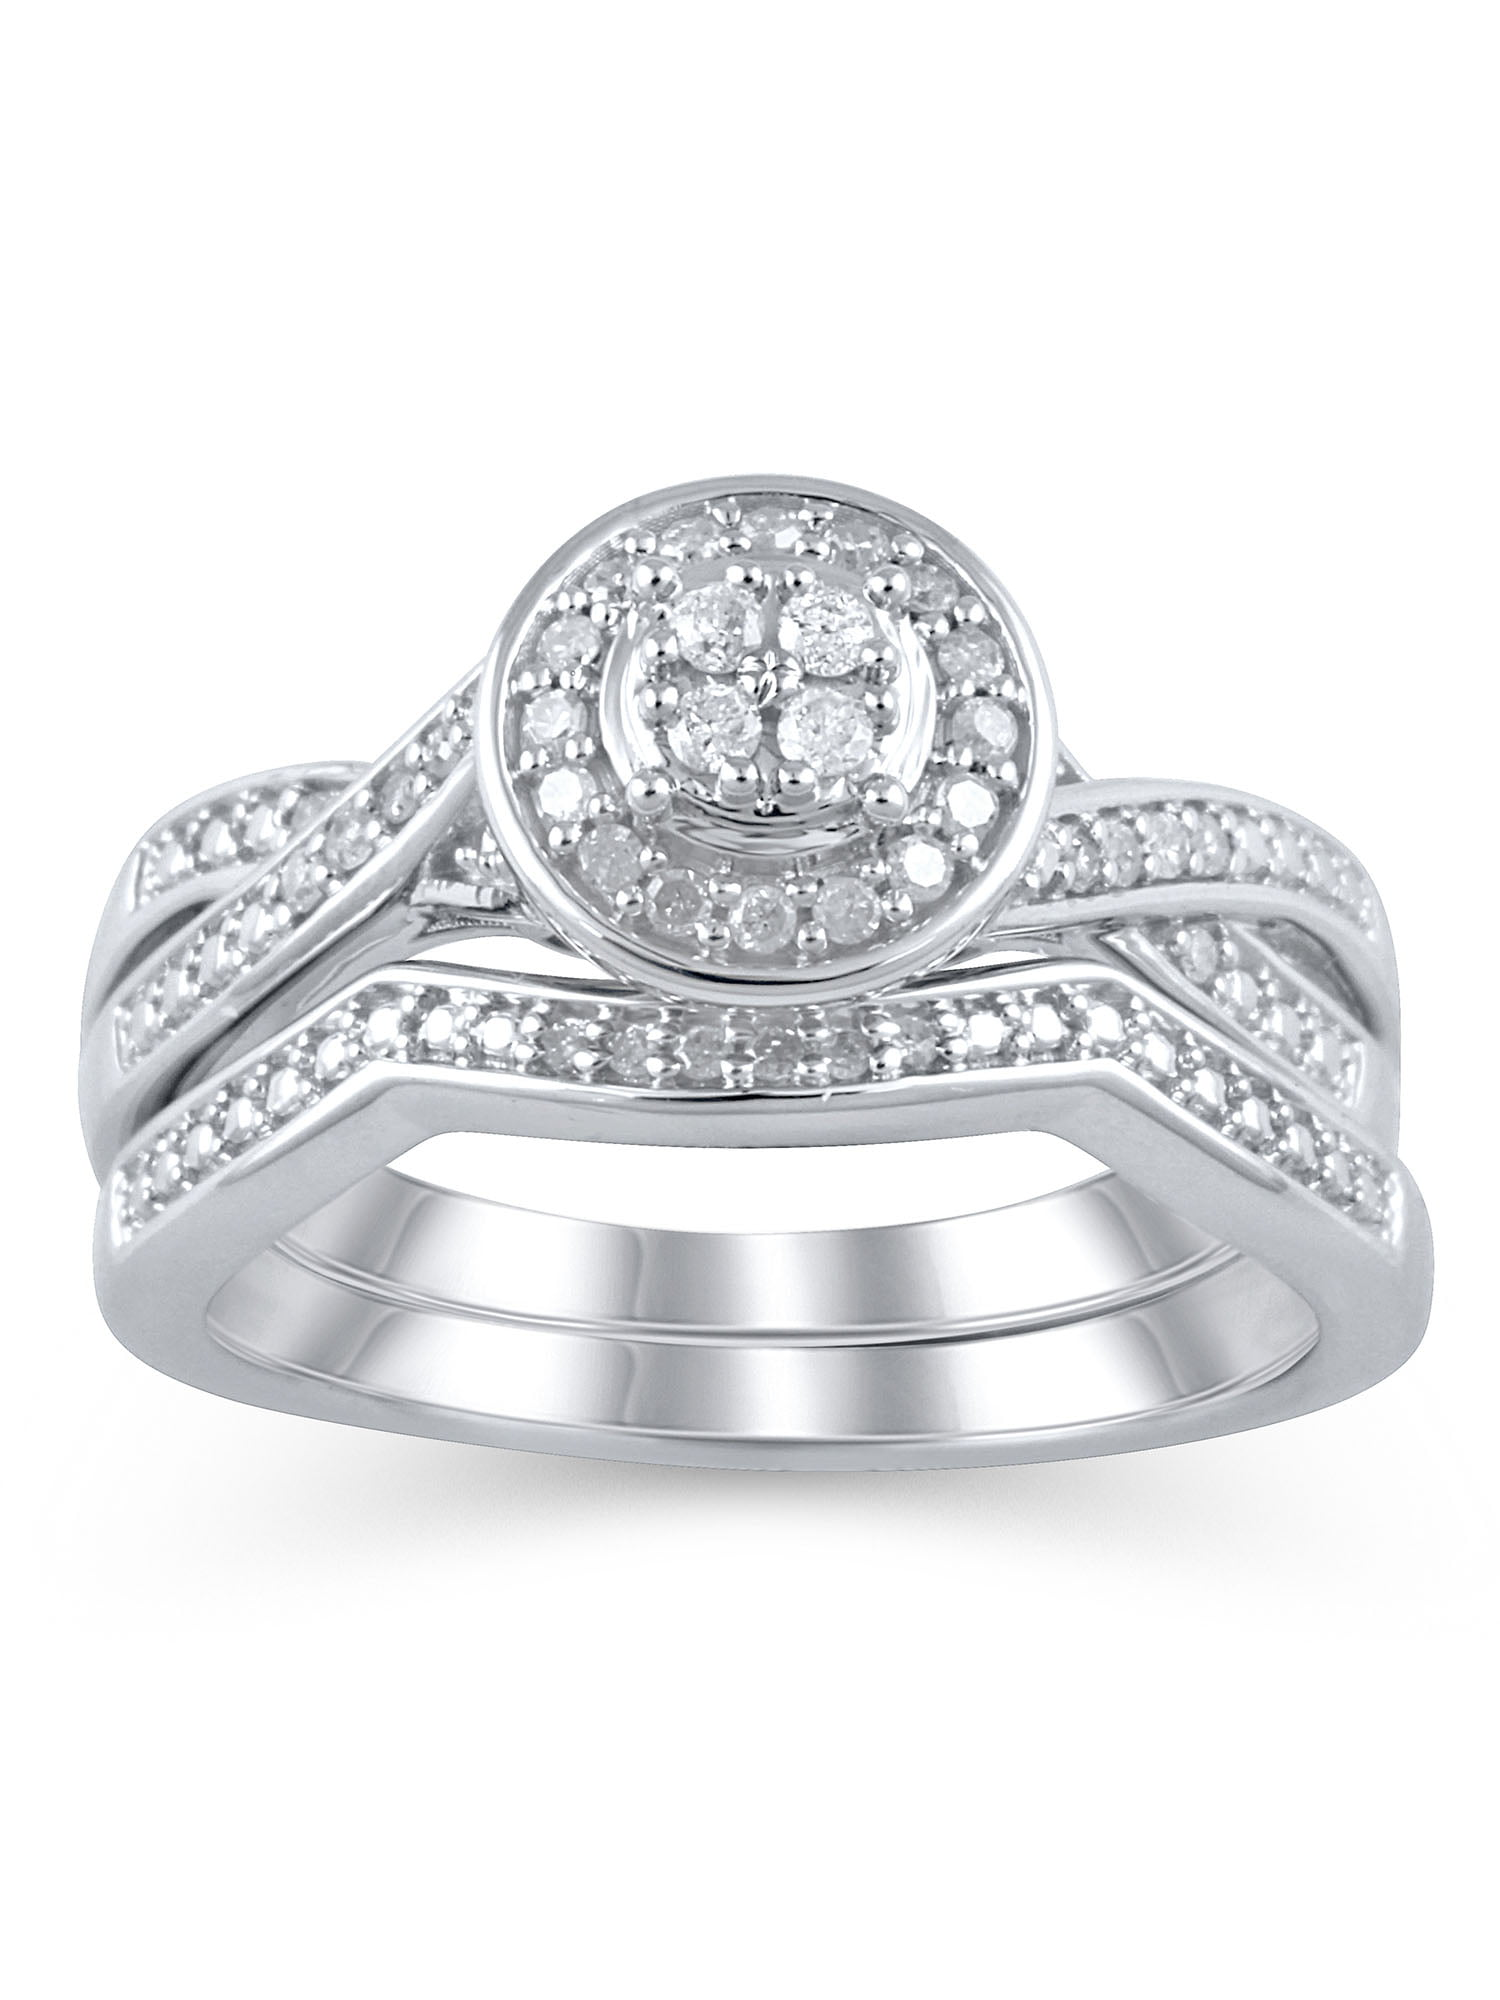 Forever Bride Wedding Ring Sets Walmartcom